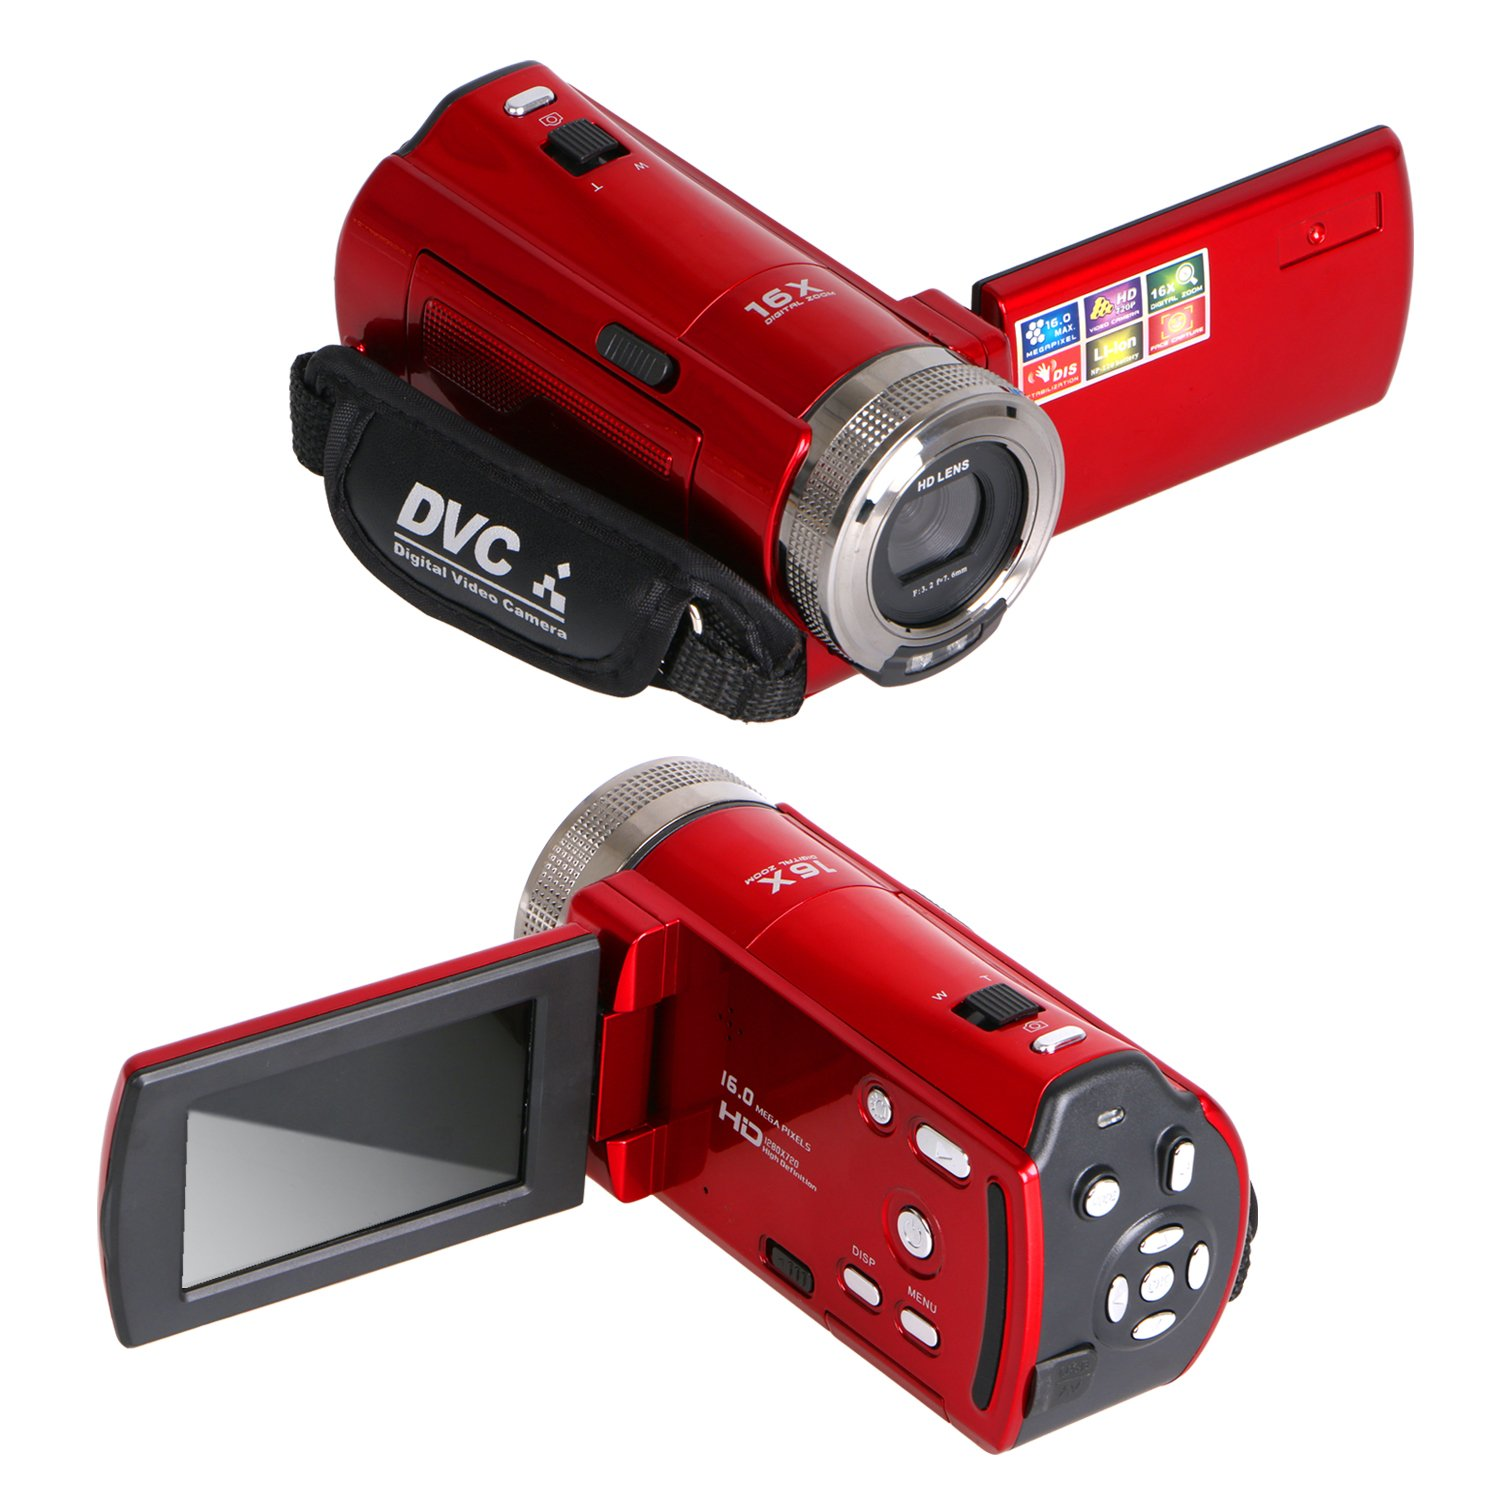 Besteker HD 720p 2.7 TFT LCD Rotation Digital Video Camcorder 16X Zoom Camera DV Video Recorder Max 16.0 Mega Pixels with Safety Tether(Non-Professional),Red